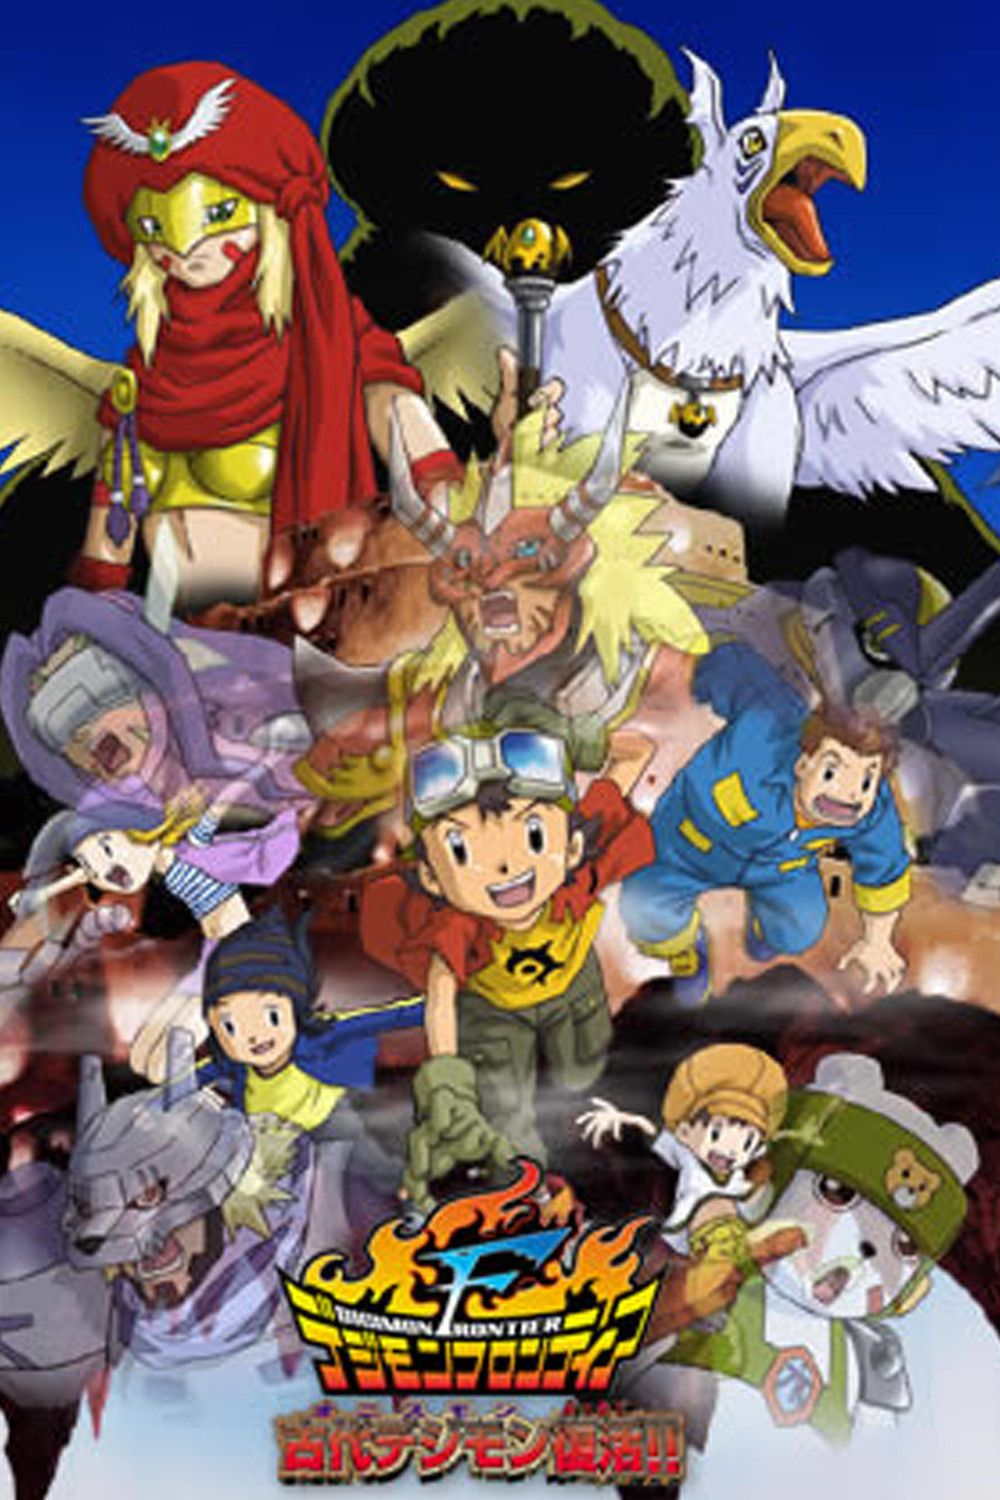 Pin by Daisuke3445 on Digimon Frontier Digimon frontier